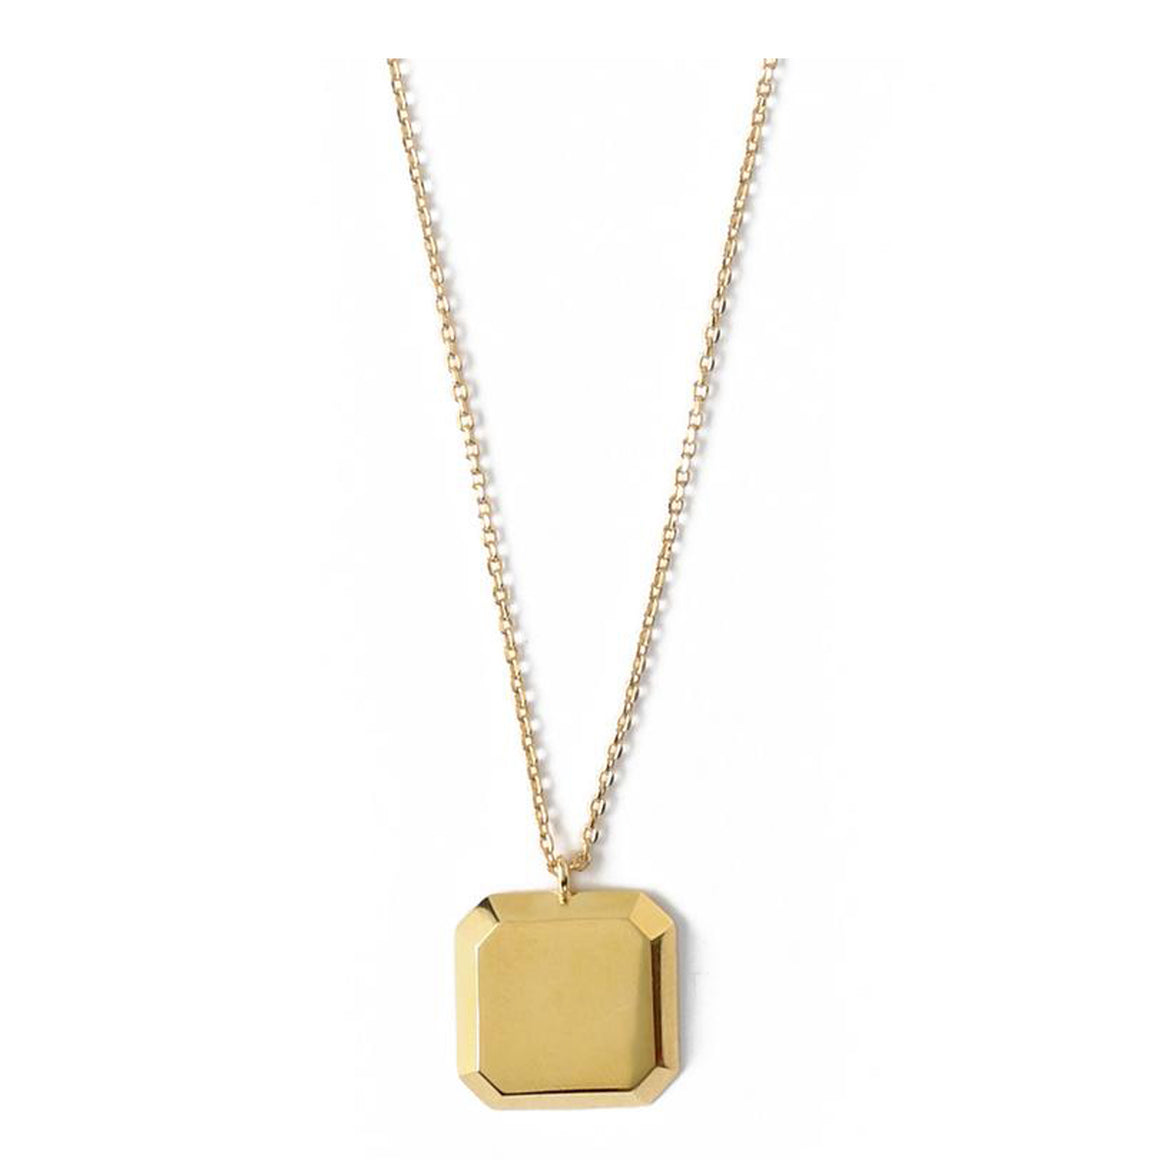 Bevelled Square Necklace for Women in Gold